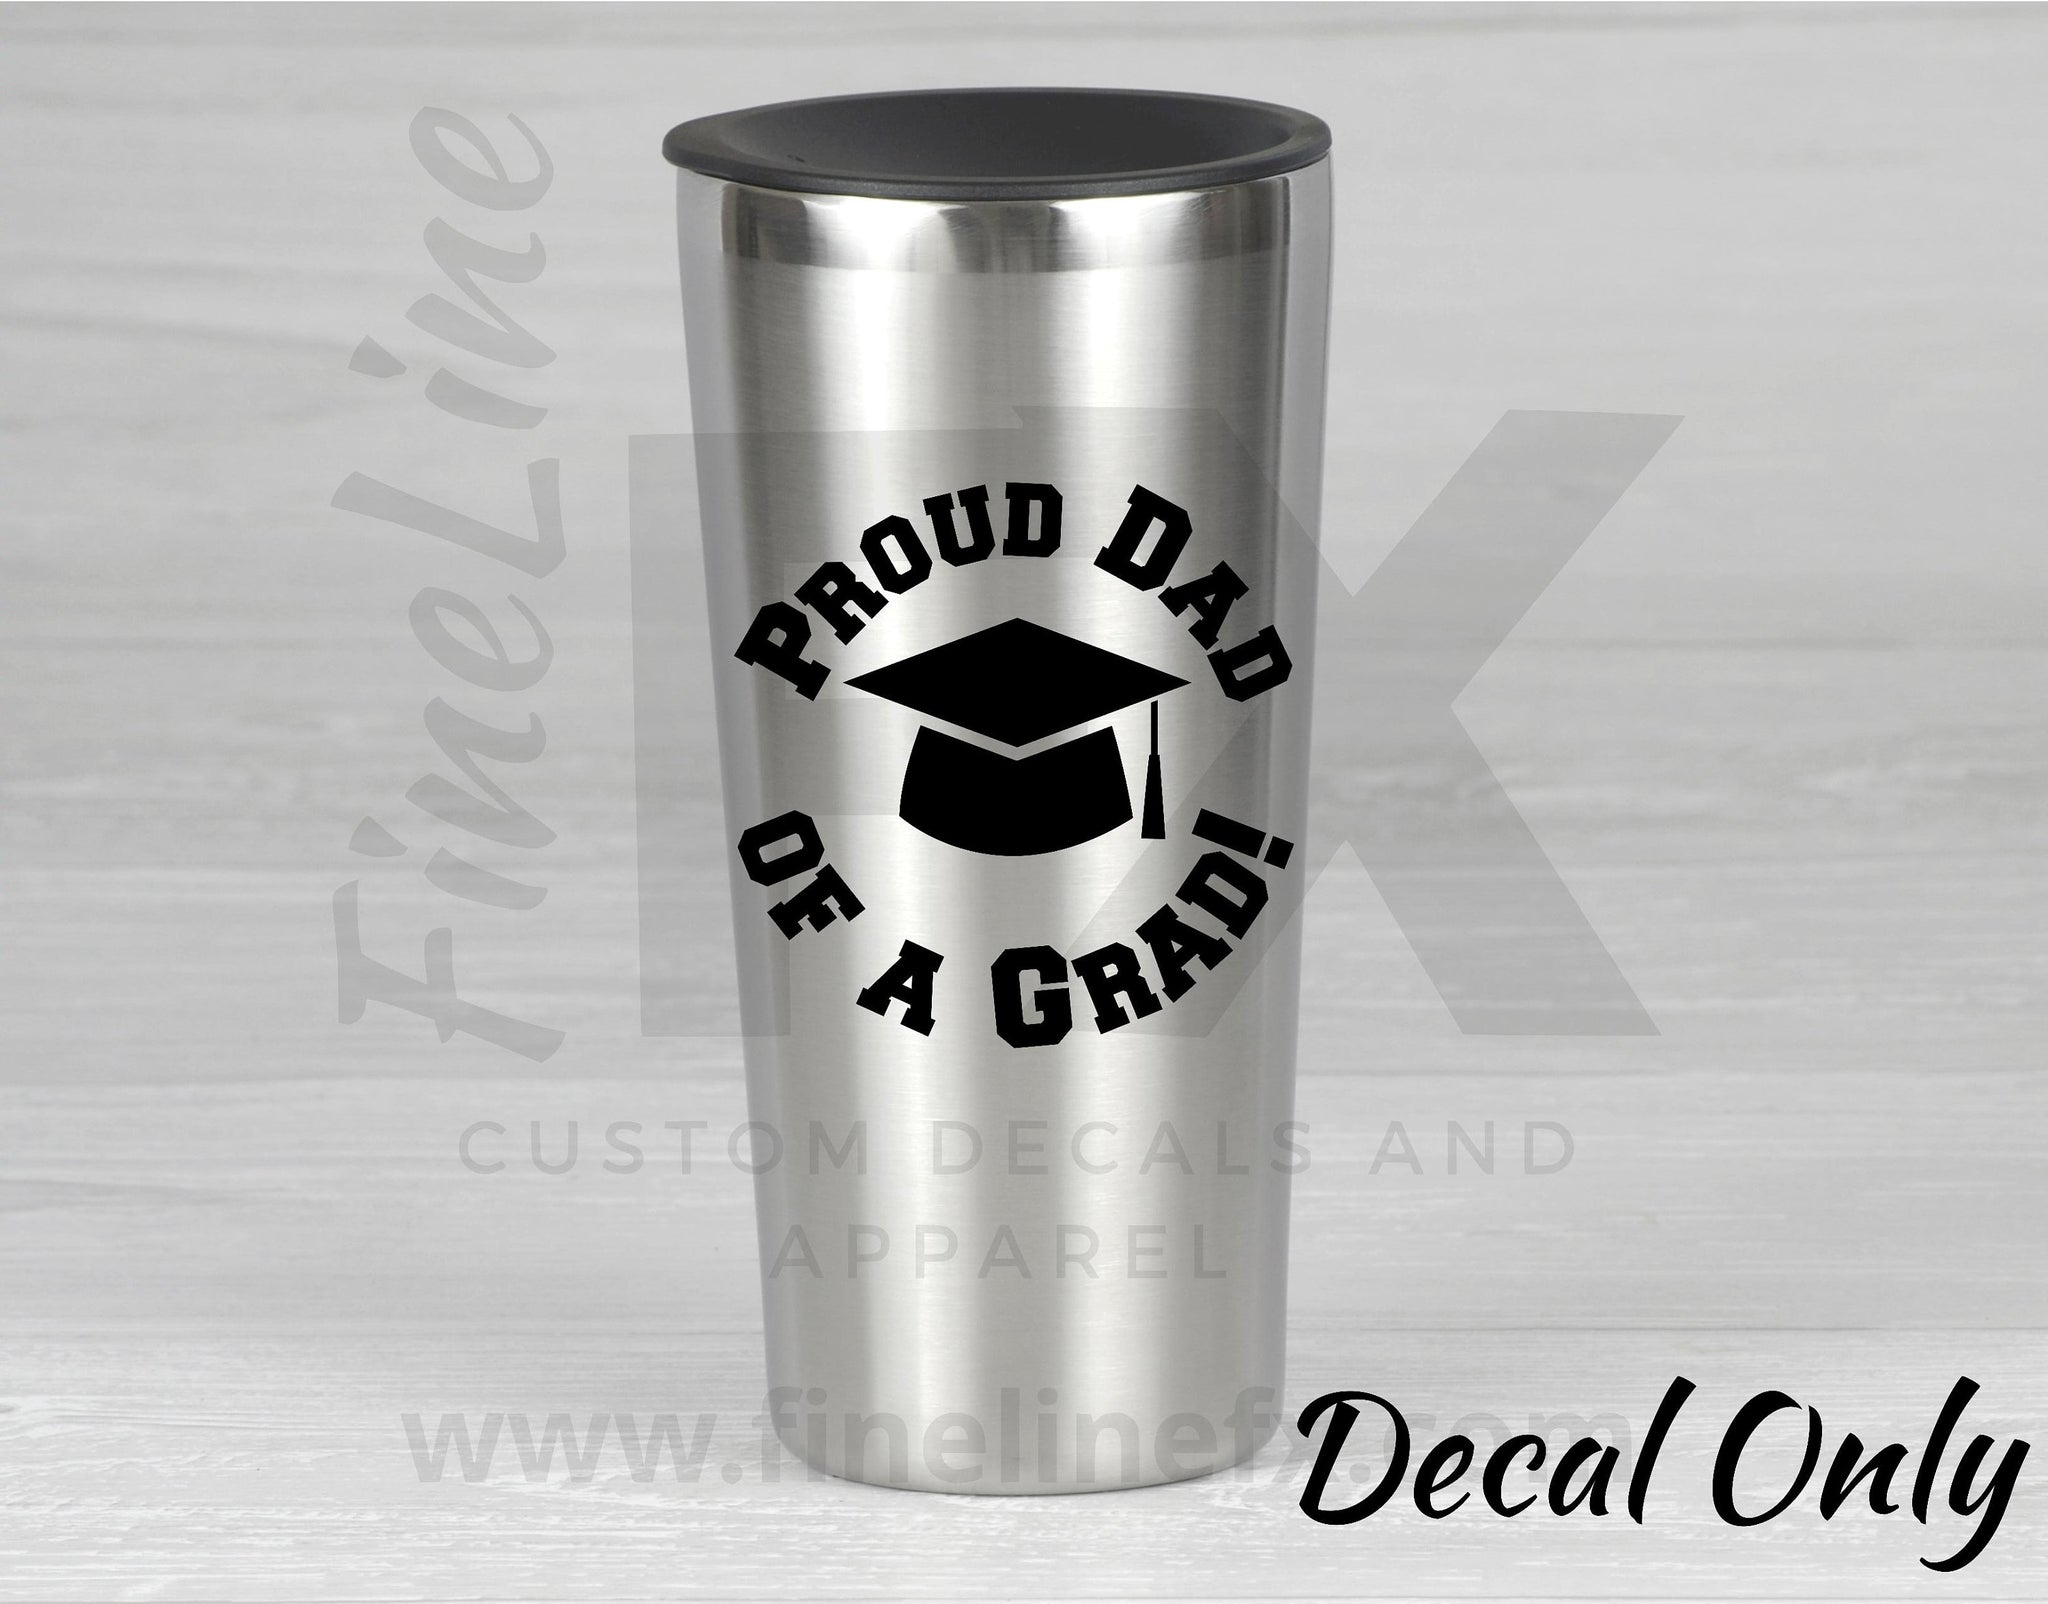 Proud Dad Of A Grad Graduation Cap Vinyl Decal Sticker